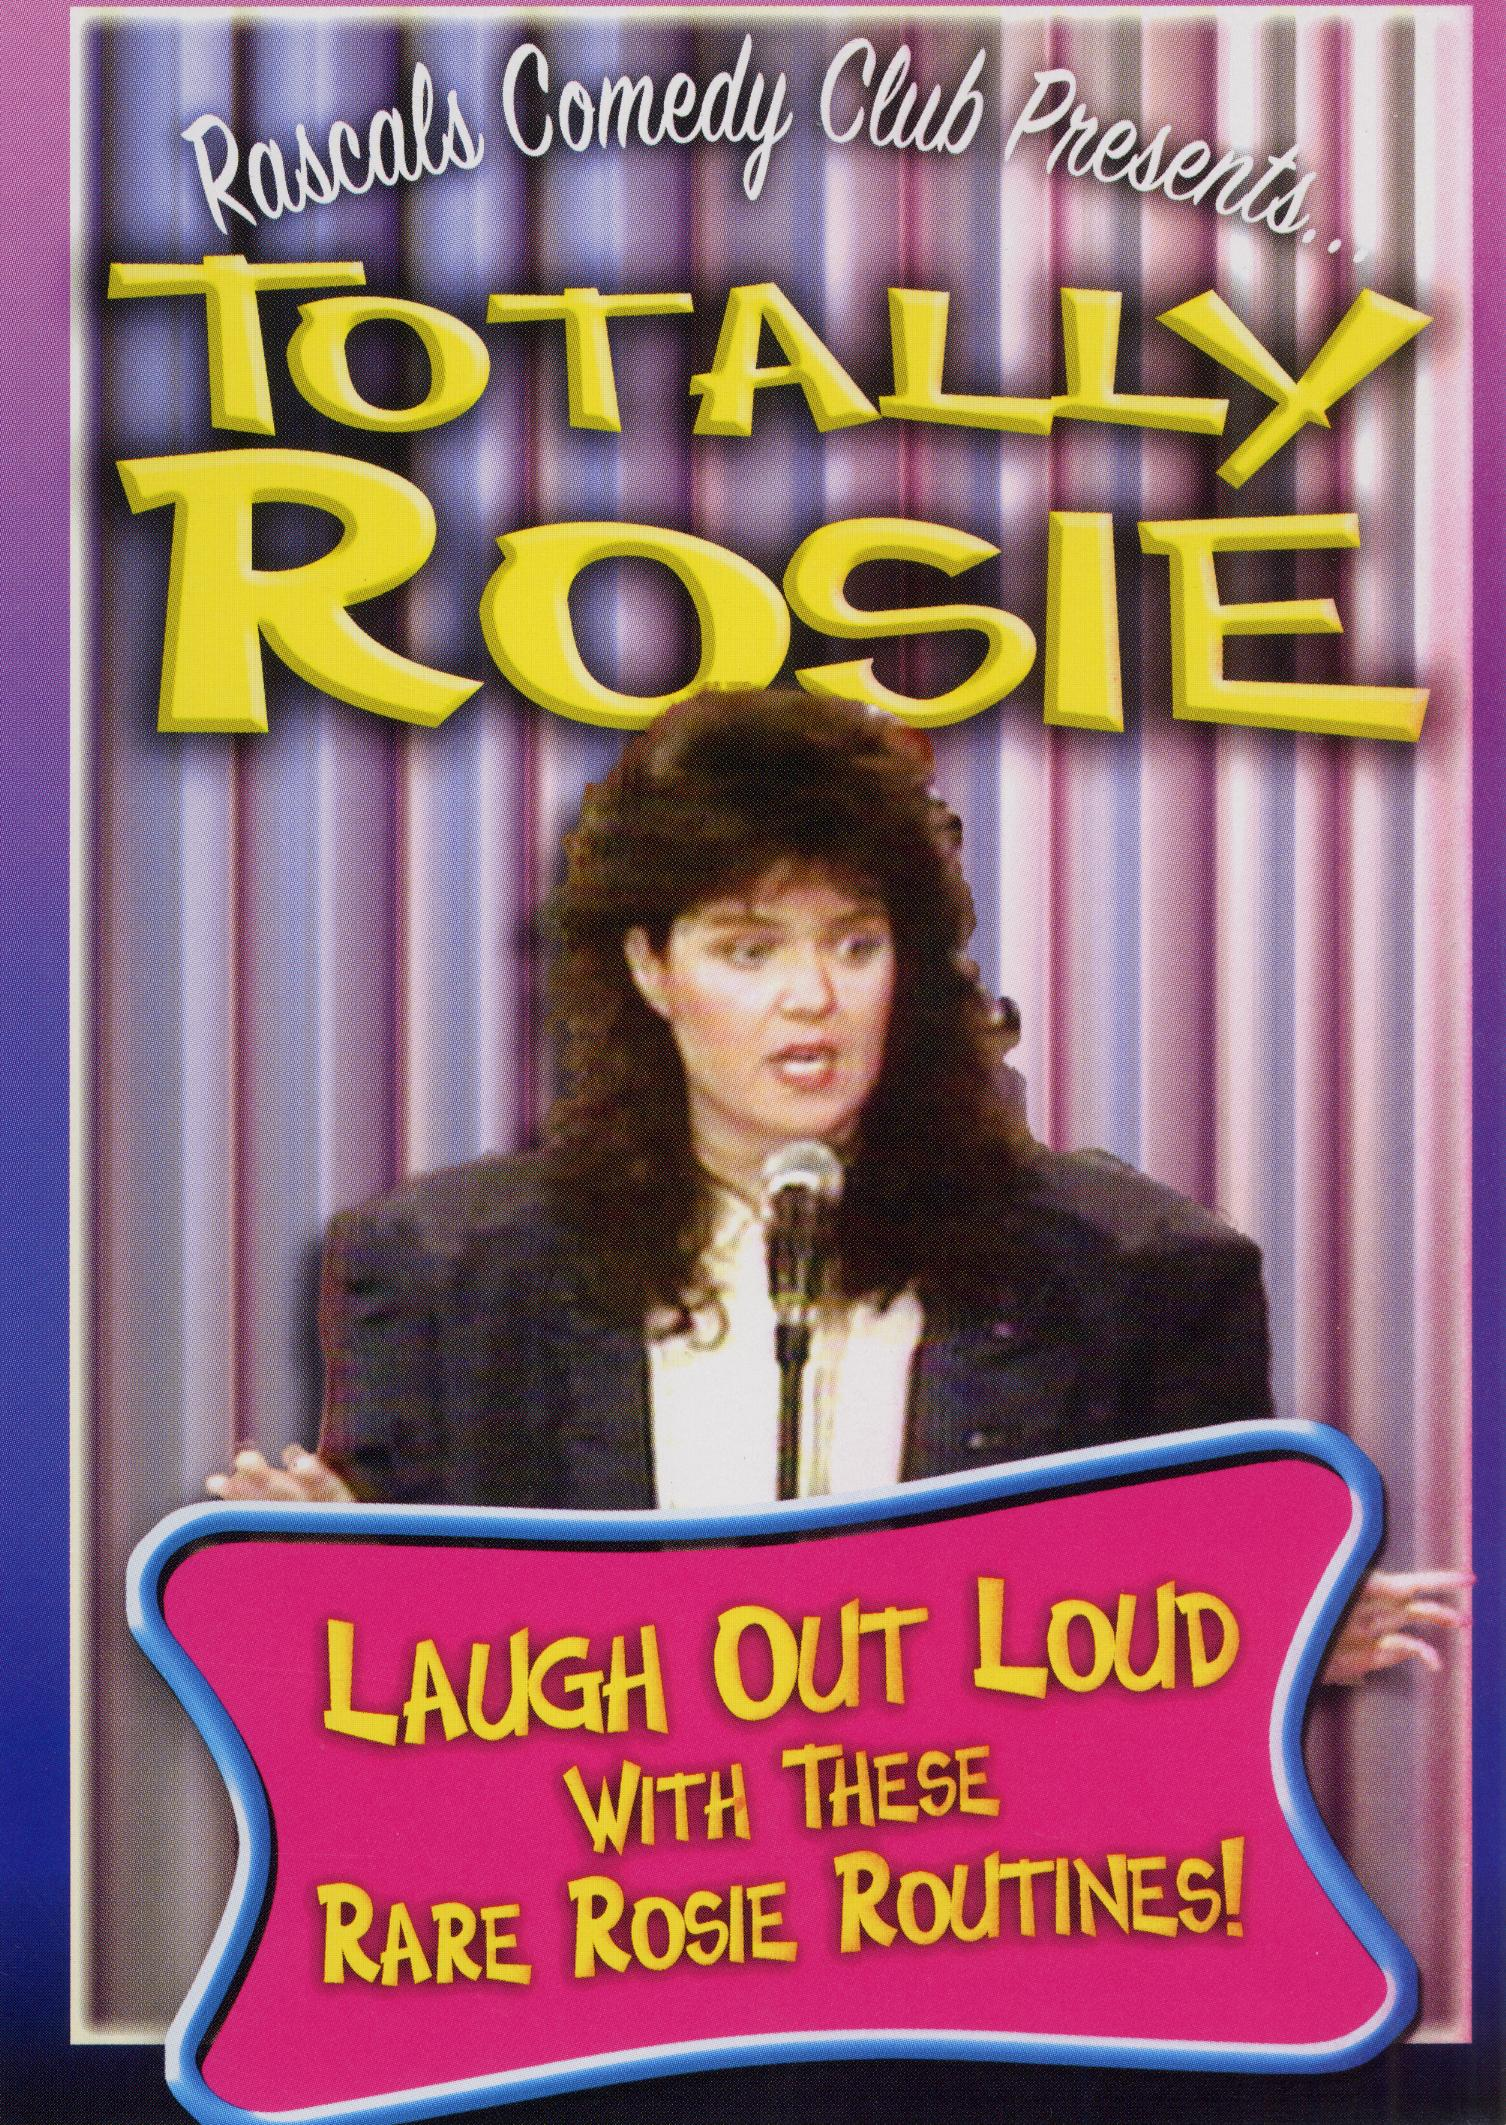 Rascals Comedy Club Presents: Totally Rosie